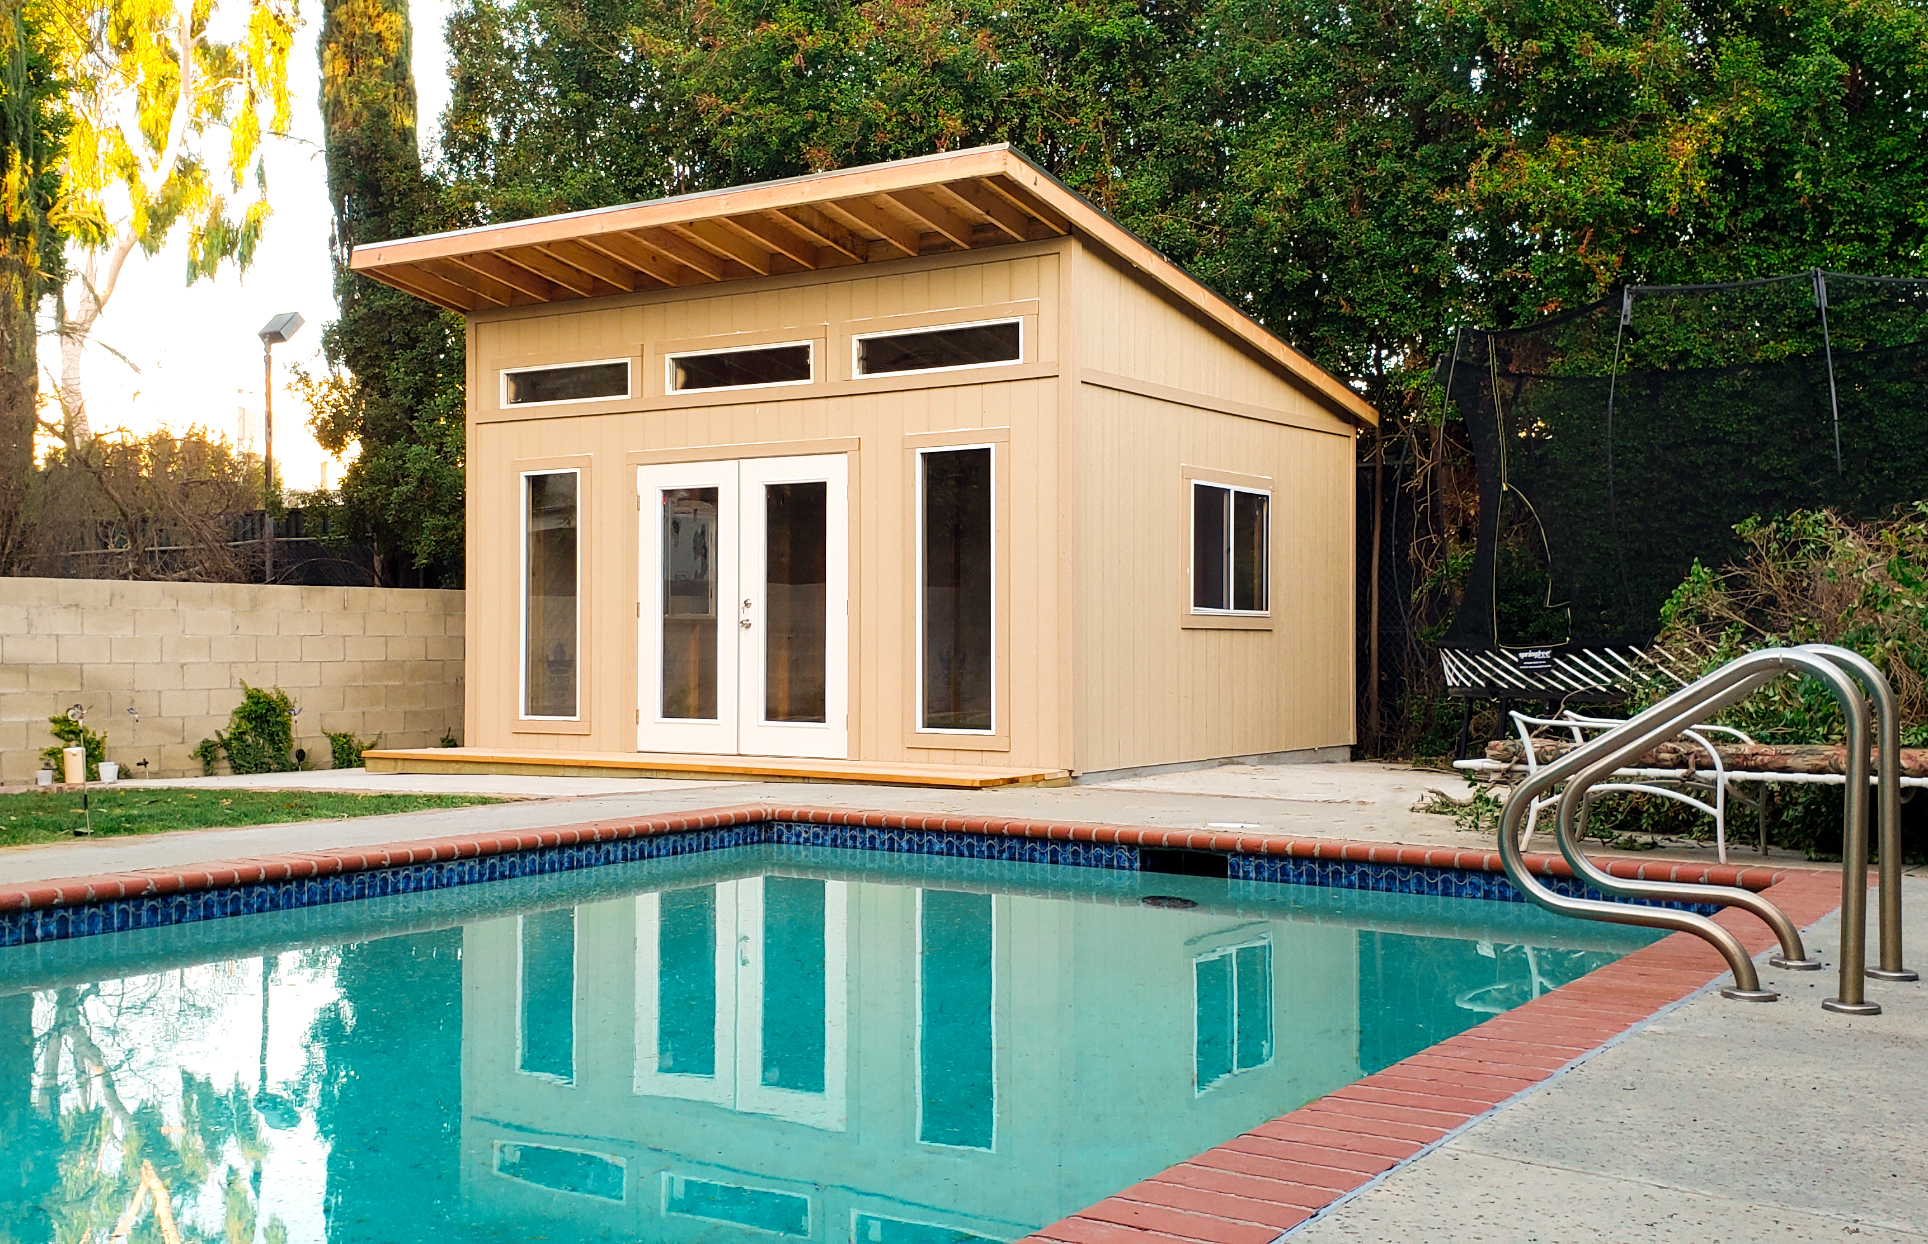 16 x 24 Studio Shed with optional double french doors, windows, front deck, and extended front overhang